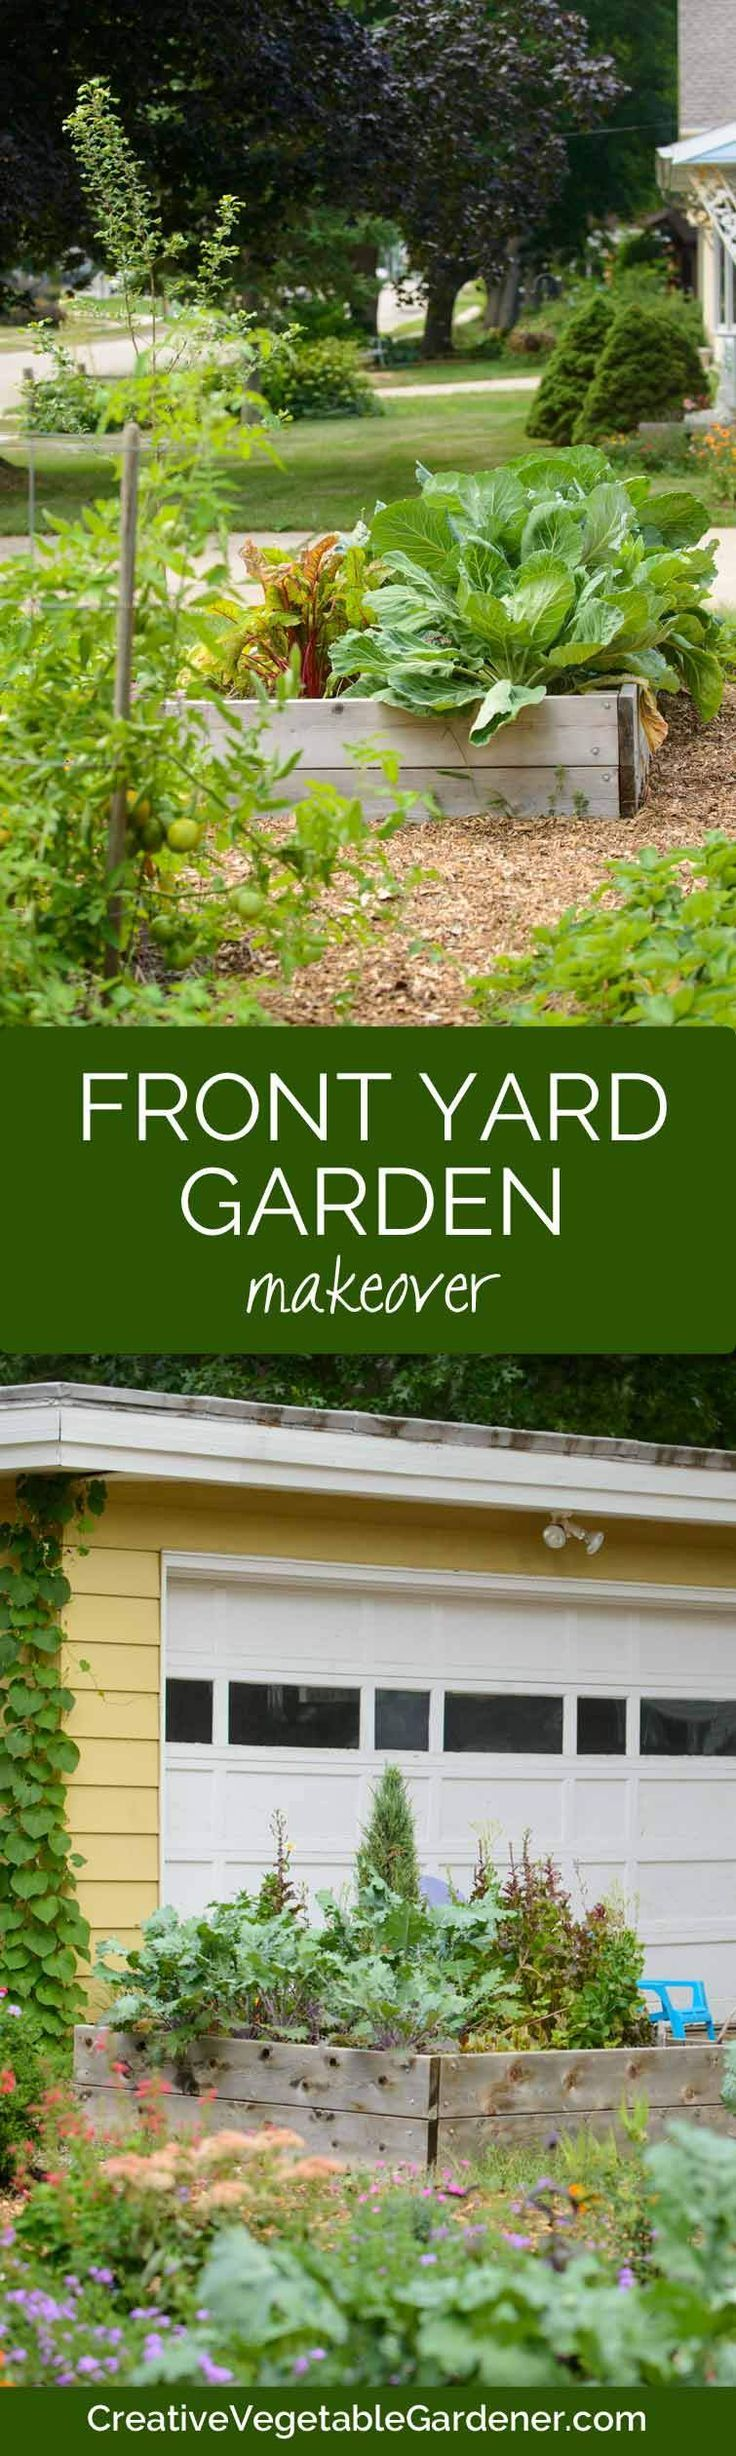 From Front Yard to Food Yard - Creative Vegetable Gardener